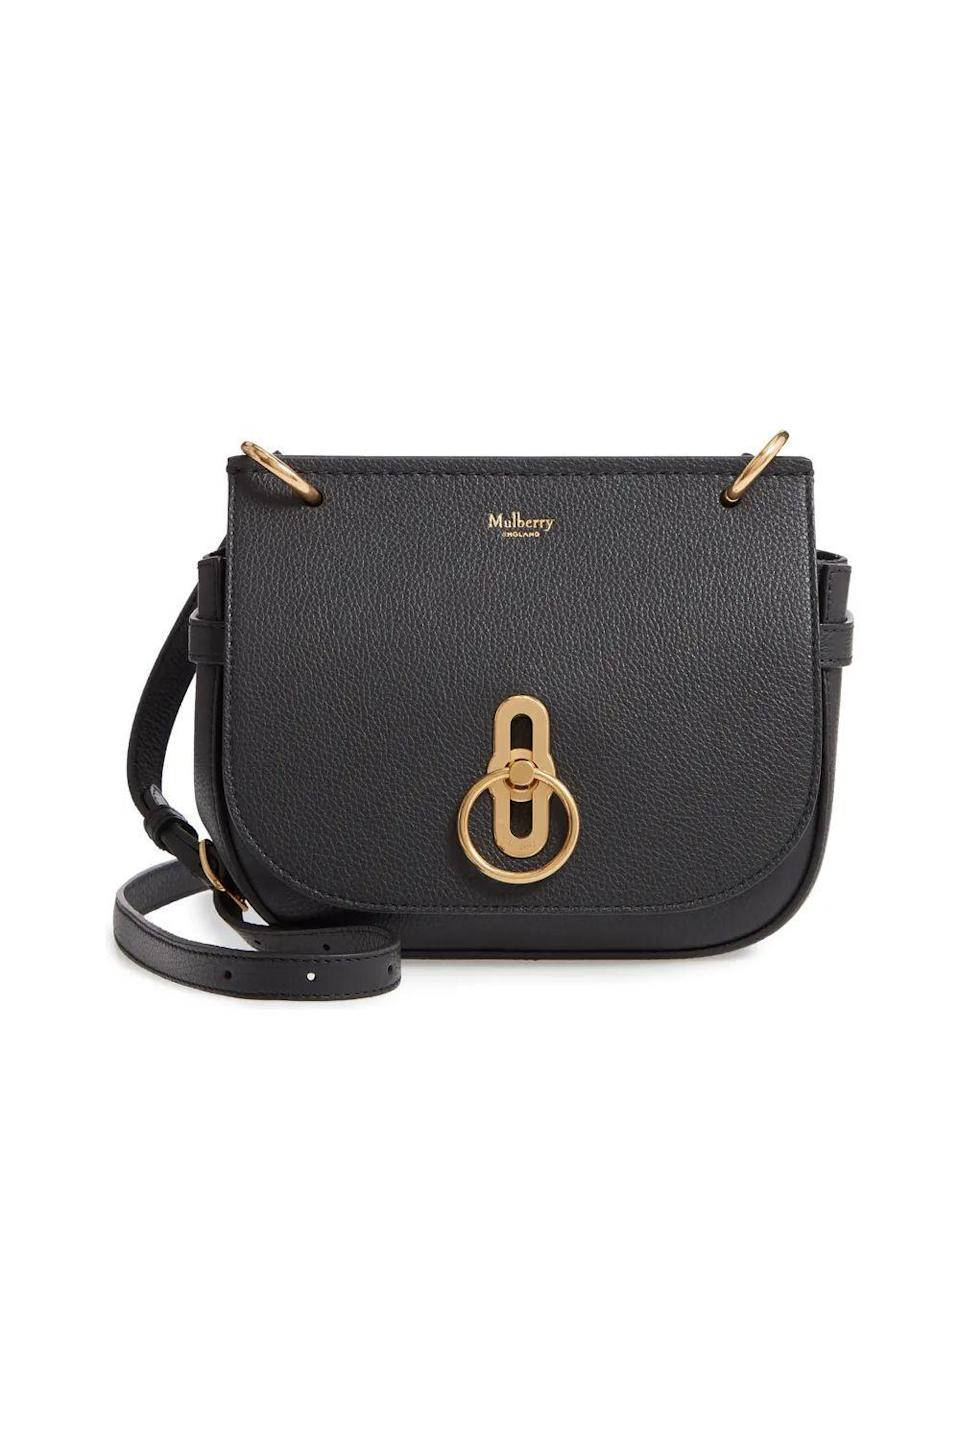 "<p><strong>Small Amberley Leather Crossbody Bag</strong></p><p>nordstrom.com</p><p><strong>$875.00</strong></p><p><a href=""https://go.redirectingat.com?id=74968X1596630&url=https%3A%2F%2Fshop.nordstrom.com%2Fs%2Fmulberry-small-amberley-leather-crossbody-bag%2F5145552&sref=https%3A%2F%2Fwww.townandcountrymag.com%2Fsociety%2Ftradition%2Fg34414467%2Fkate-middleton-gift-guide%2F"" rel=""nofollow noopener"" target=""_blank"" data-ylk=""slk:Shop Now"" class=""link rapid-noclick-resp"">Shop Now</a></p><p>Kate has carried many a bag in her day, but a few handbag brands have emerged as her favorites. Among them is Mulberry, a British label renowned for its leather goods. (Some of her other favorites, if you're curious, are <a href=""https://go.redirectingat.com?id=74968X1596630&url=https%3A%2F%2Fwww.selfridges.com%2FUS%2Fen%2Fcat%2Faspinal-of-london%2F&sref=https%3A%2F%2Fwww.townandcountrymag.com%2Fsociety%2Ftradition%2Fg34414467%2Fkate-middleton-gift-guide%2F"" rel=""nofollow noopener"" target=""_blank"" data-ylk=""slk:Aspinal of London"" class=""link rapid-noclick-resp"">Aspinal of London</a> and <a href=""https://go.redirectingat.com?id=74968X1596630&url=https%3A%2F%2Fwww.net-a-porter.com%2Fen-us%2Fshop%2Fdesigner%2Fanya-hindmarch&sref=https%3A%2F%2Fwww.townandcountrymag.com%2Fsociety%2Ftradition%2Fg34414467%2Fkate-middleton-gift-guide%2F"" rel=""nofollow noopener"" target=""_blank"" data-ylk=""slk:Anya Hindmarch"" class=""link rapid-noclick-resp"">Anya Hindmarch</a>.)</p>"